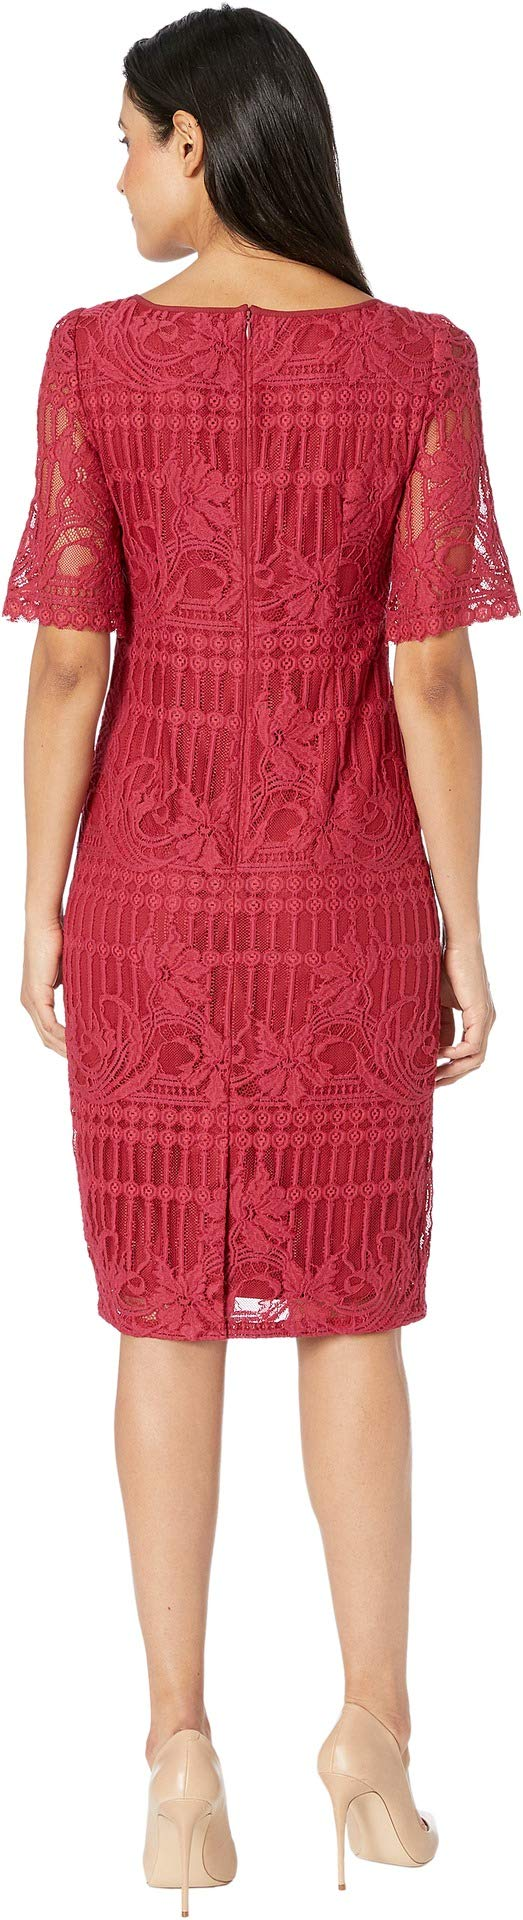 Adrianna Papell Womens Embroidered Scalloped Sheath